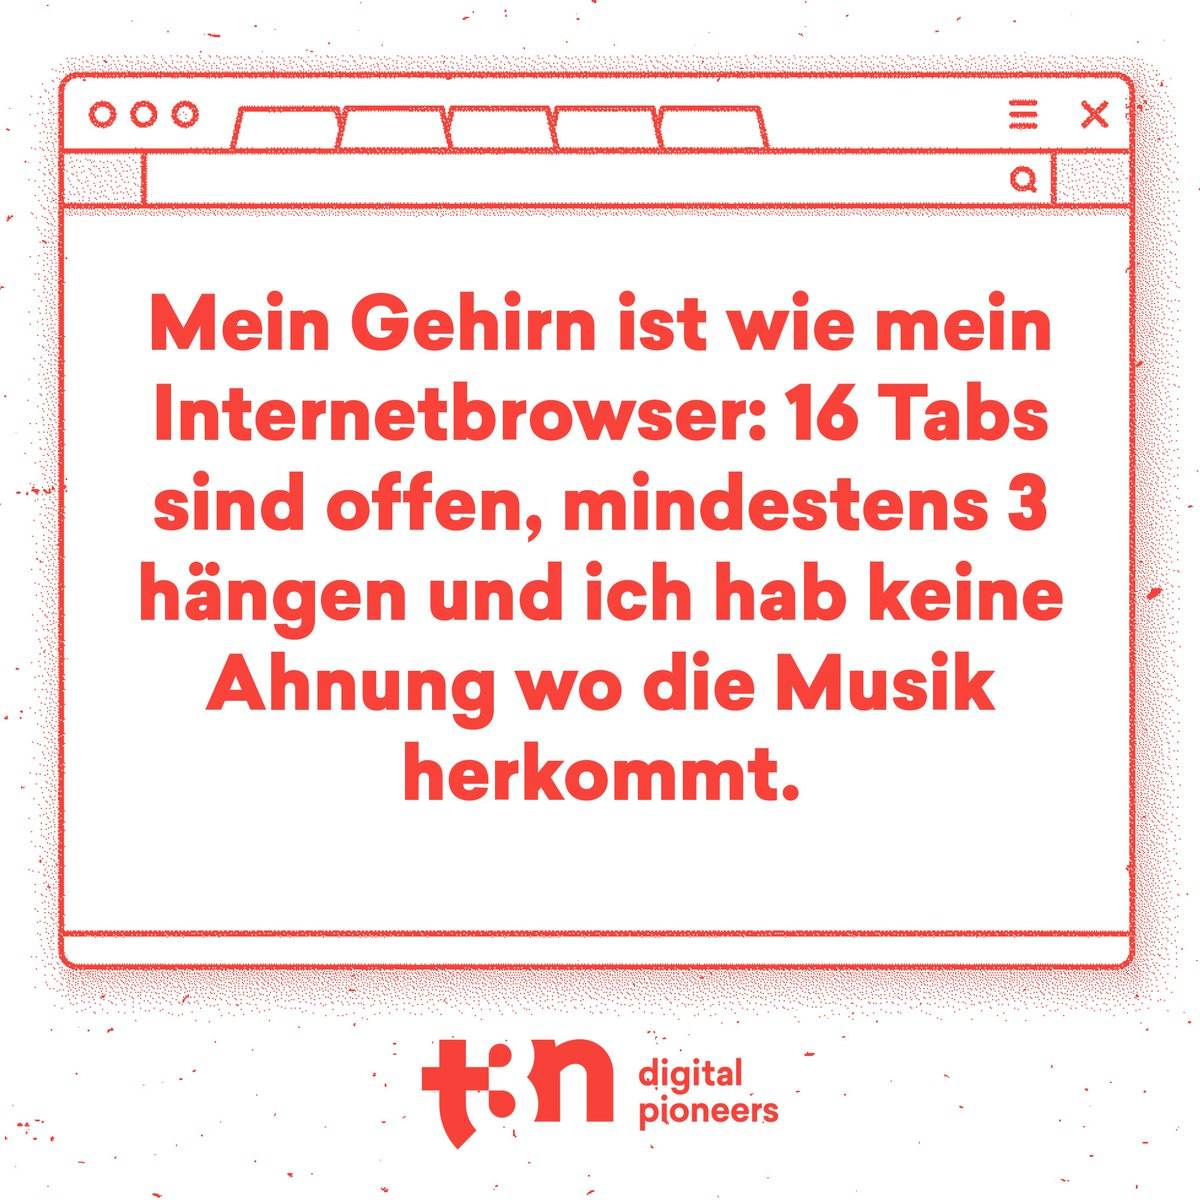 T3n Magazin On Twitter Jeden Tag